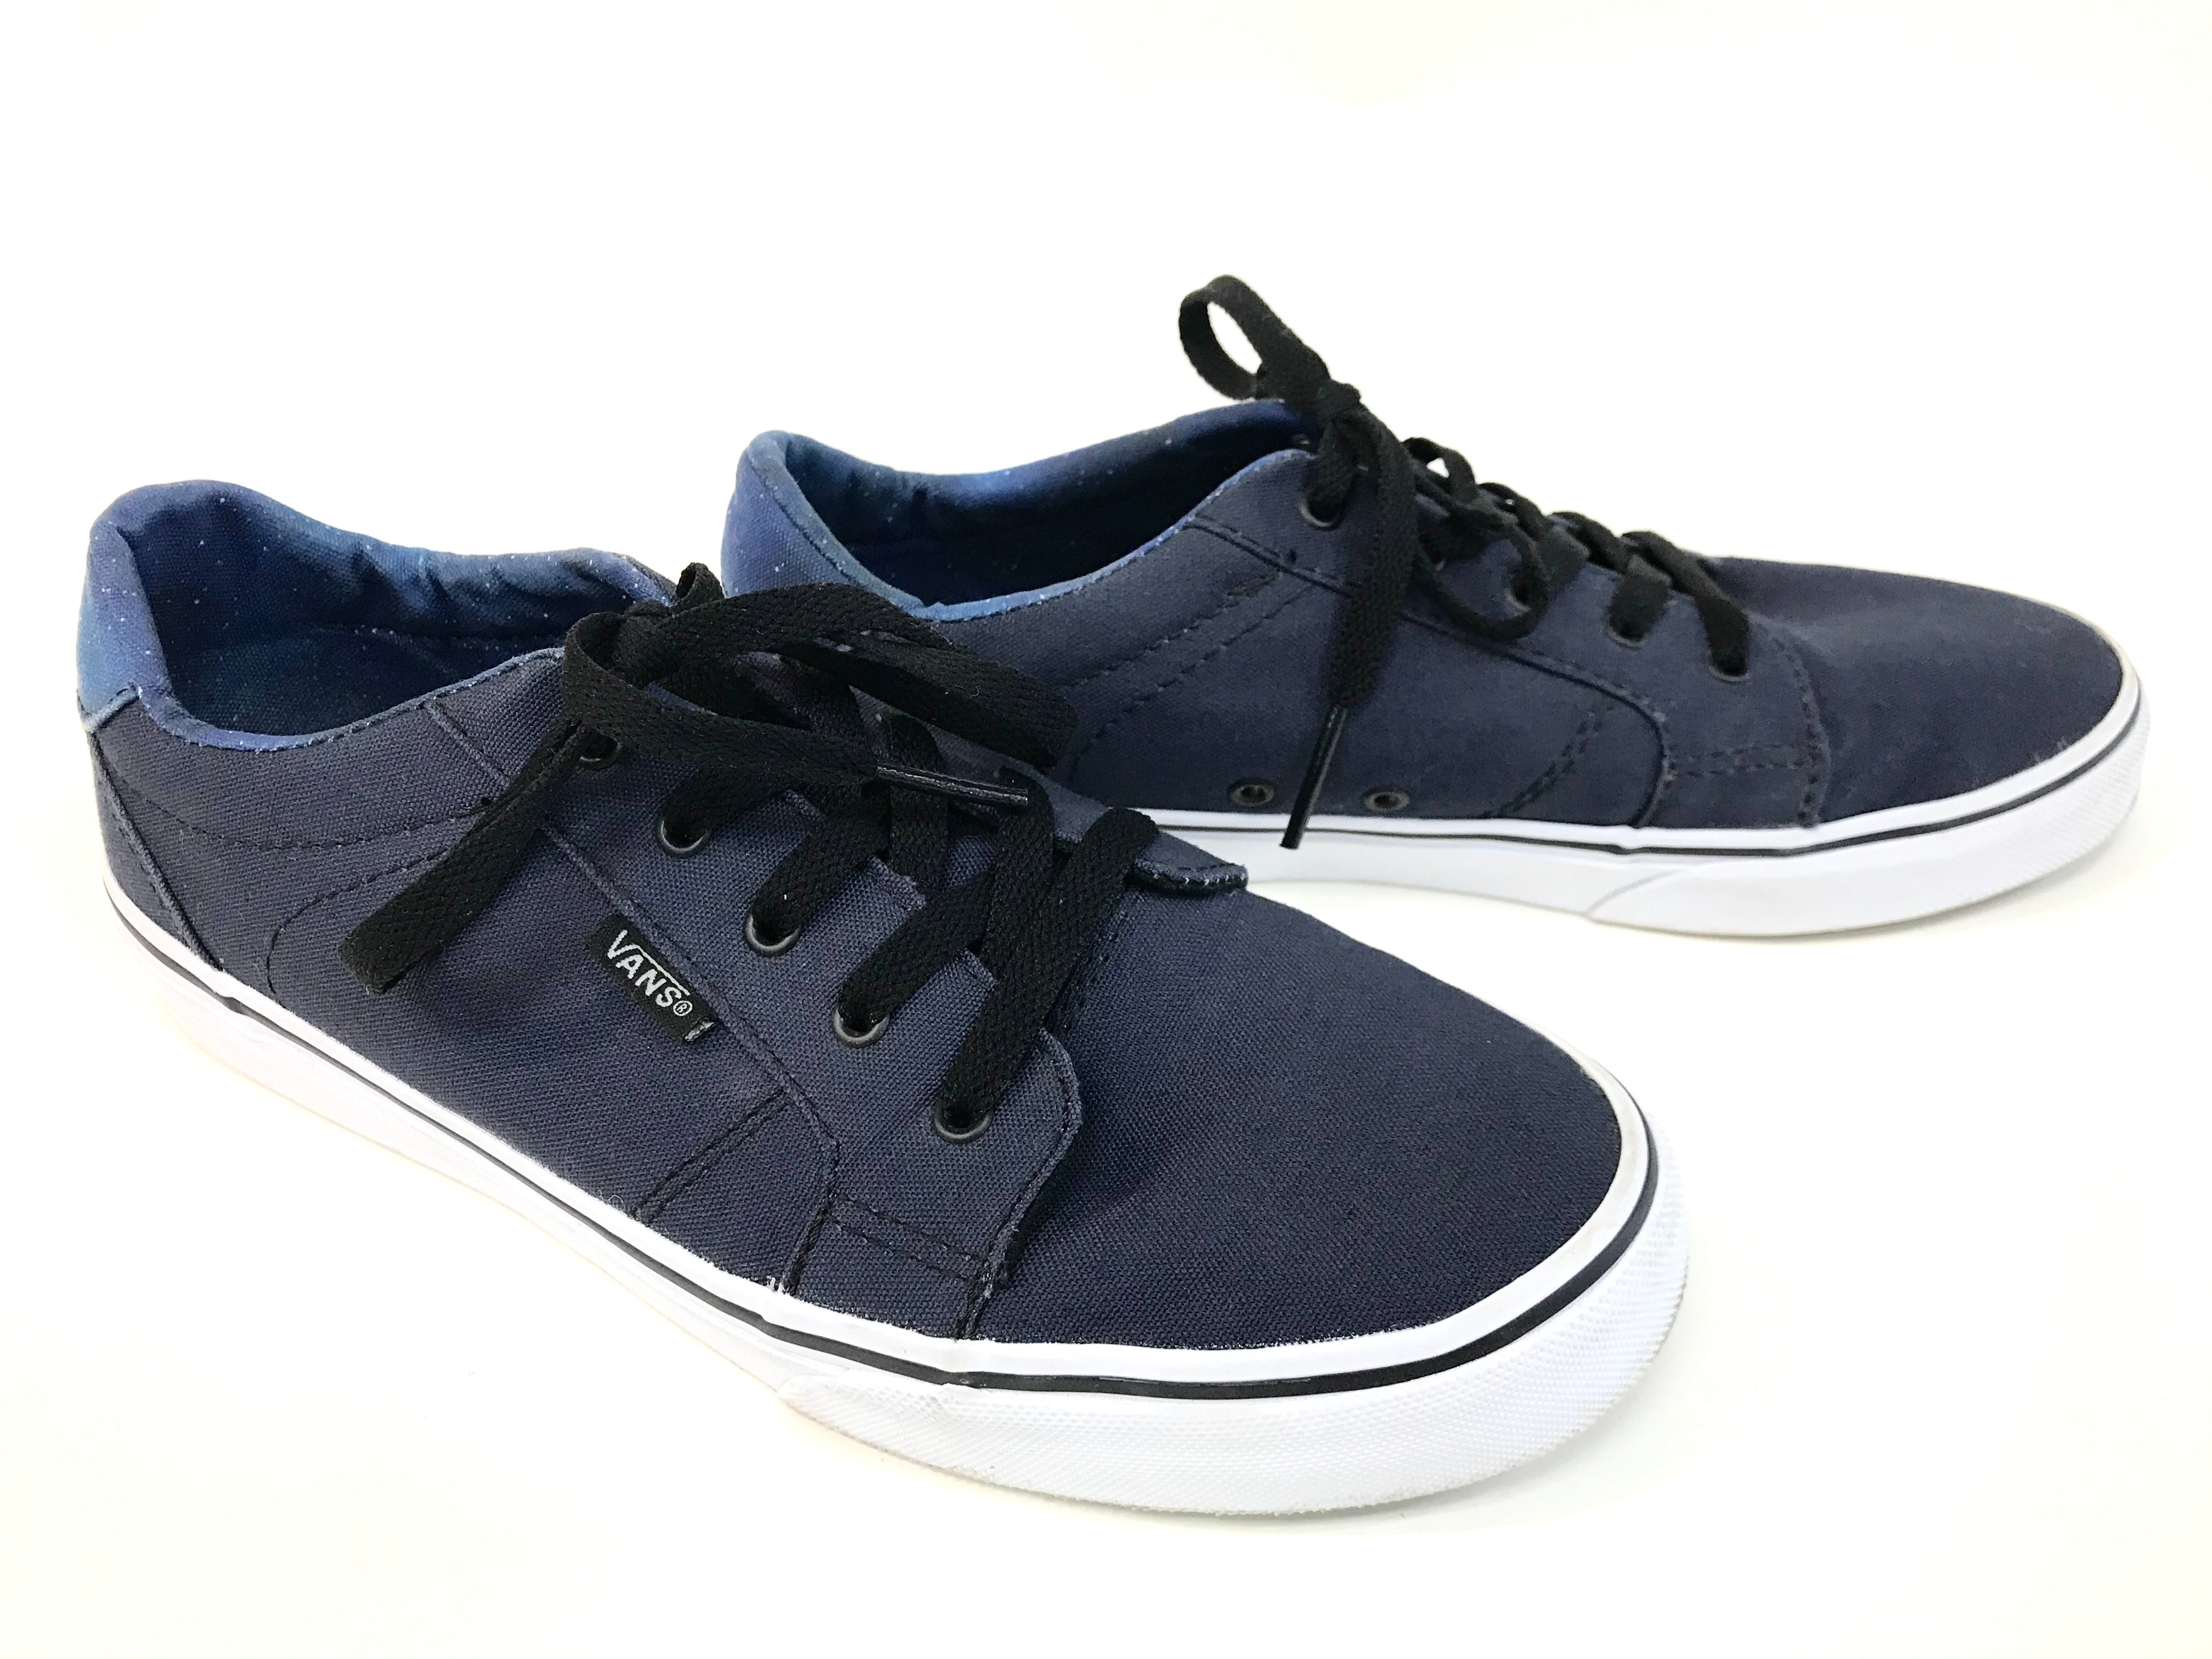 Photo #2 - BRAND: VANS <BR>STYLE: SHOES ATHLETIC <BR>COLOR: NAVY <BR>SIZE: 6 <BR>SKU: 262-26275-62214<BR>GENTLE WEAR SHOWS <BR>FINAL SALE - AS IS